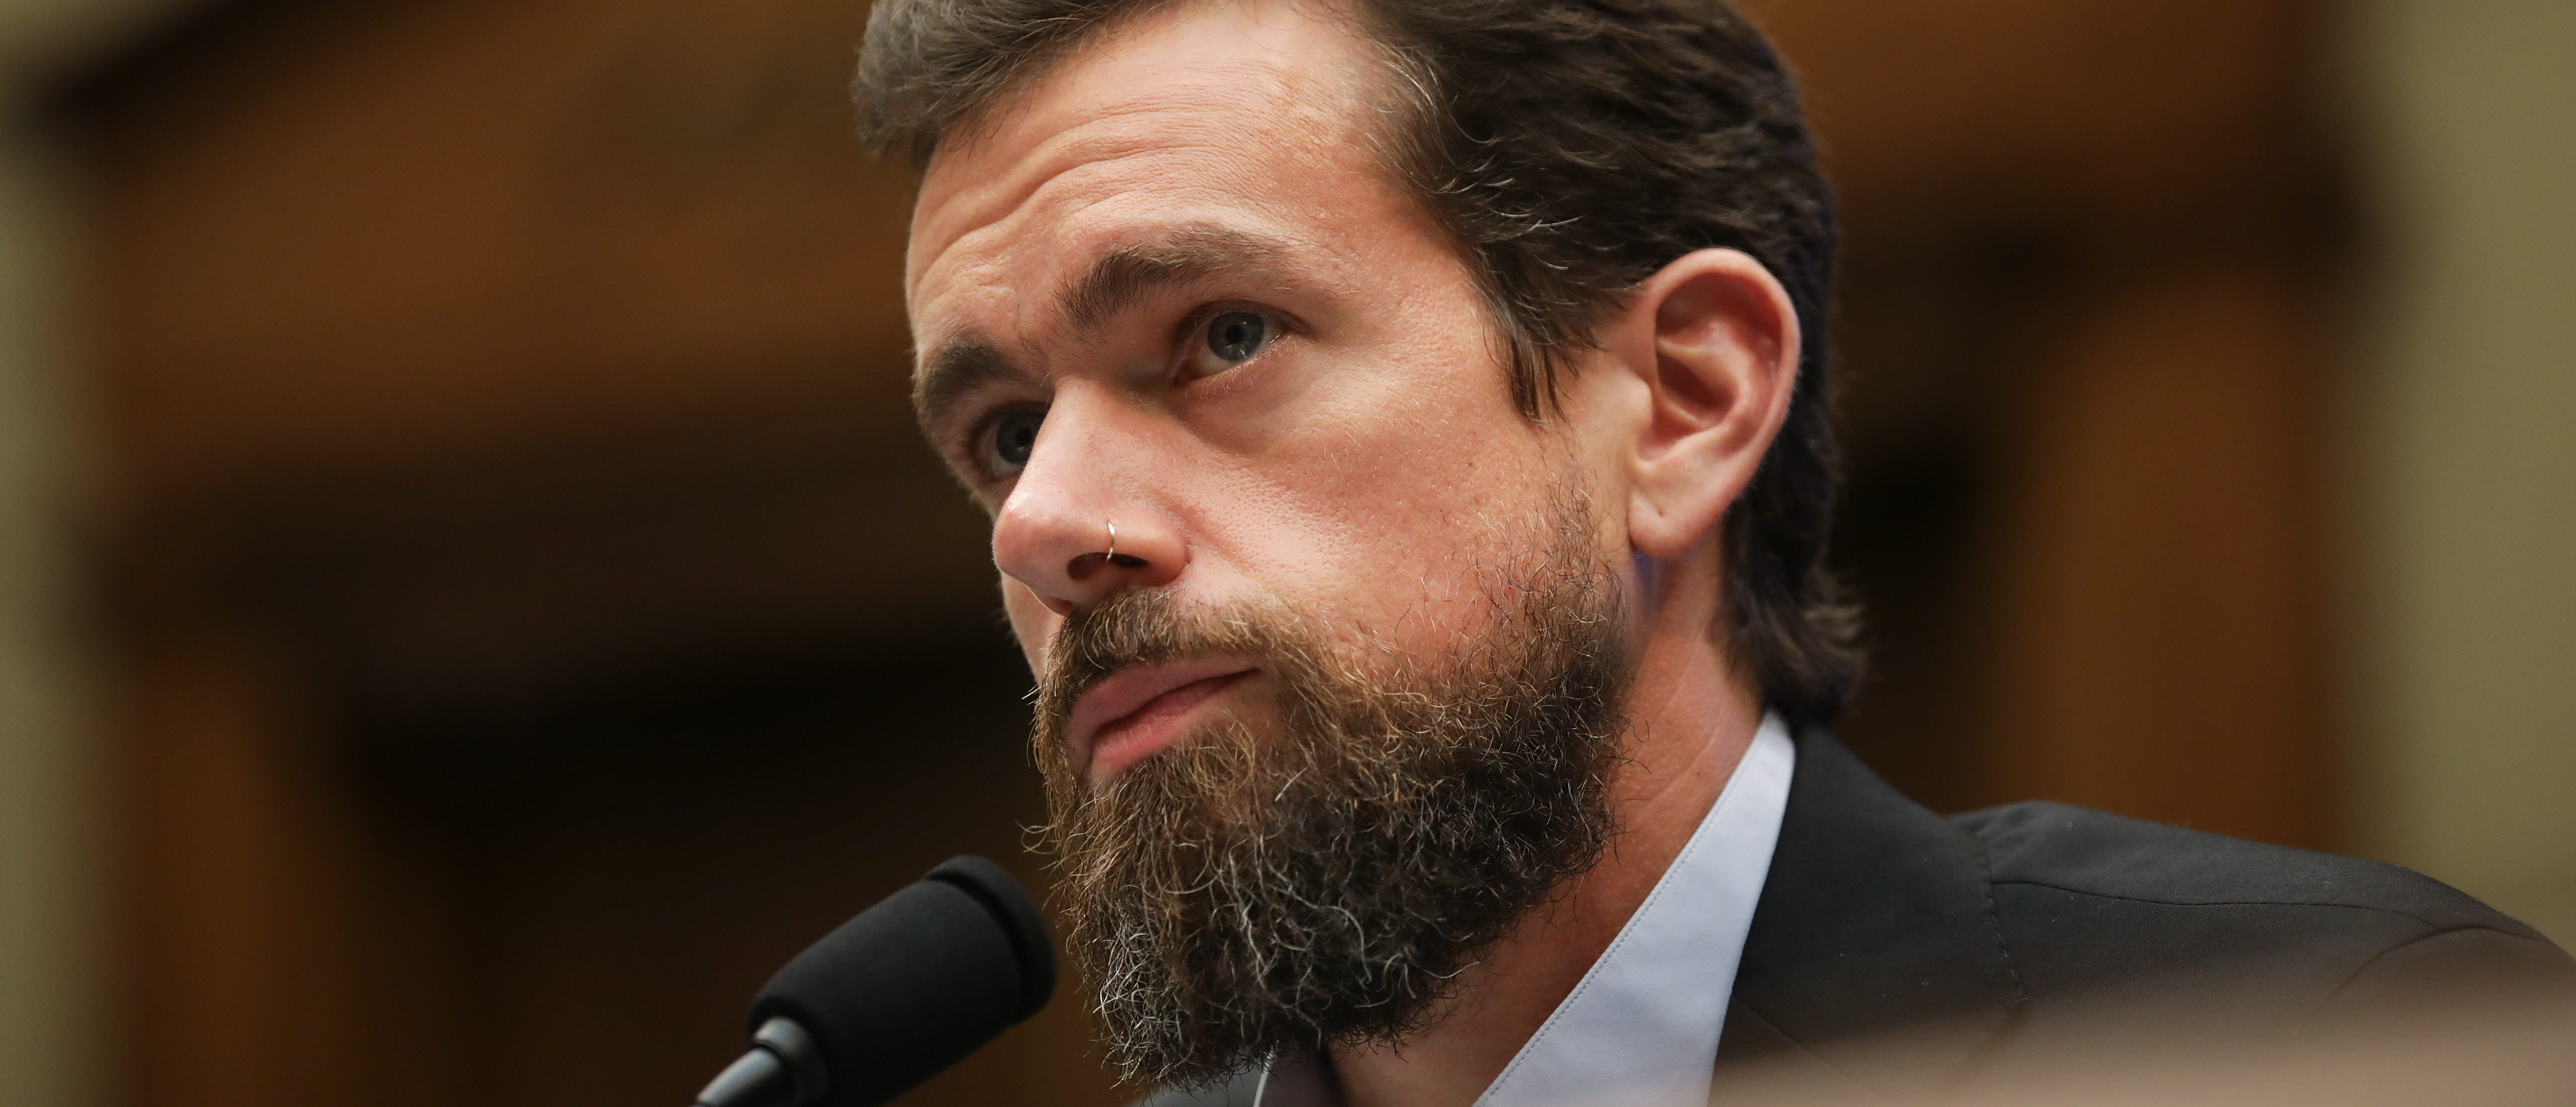 WASHINGTON, DC - SEPTEMBER 5: Twitter chief executive officer Jack Dorsey testifies during a House Committee on Energy and Commerce hearing about Twitter's transparency and accountability, on Capitol Hill, September 5, 2018 in Washington, DC. Earlier in the day, Dorsey faced questions from the Senate Intelligence Committee about how foreign operatives use their platforms in attempts to influence and manipulate public opinion. (Photo by Drew Angerer/Getty Images)